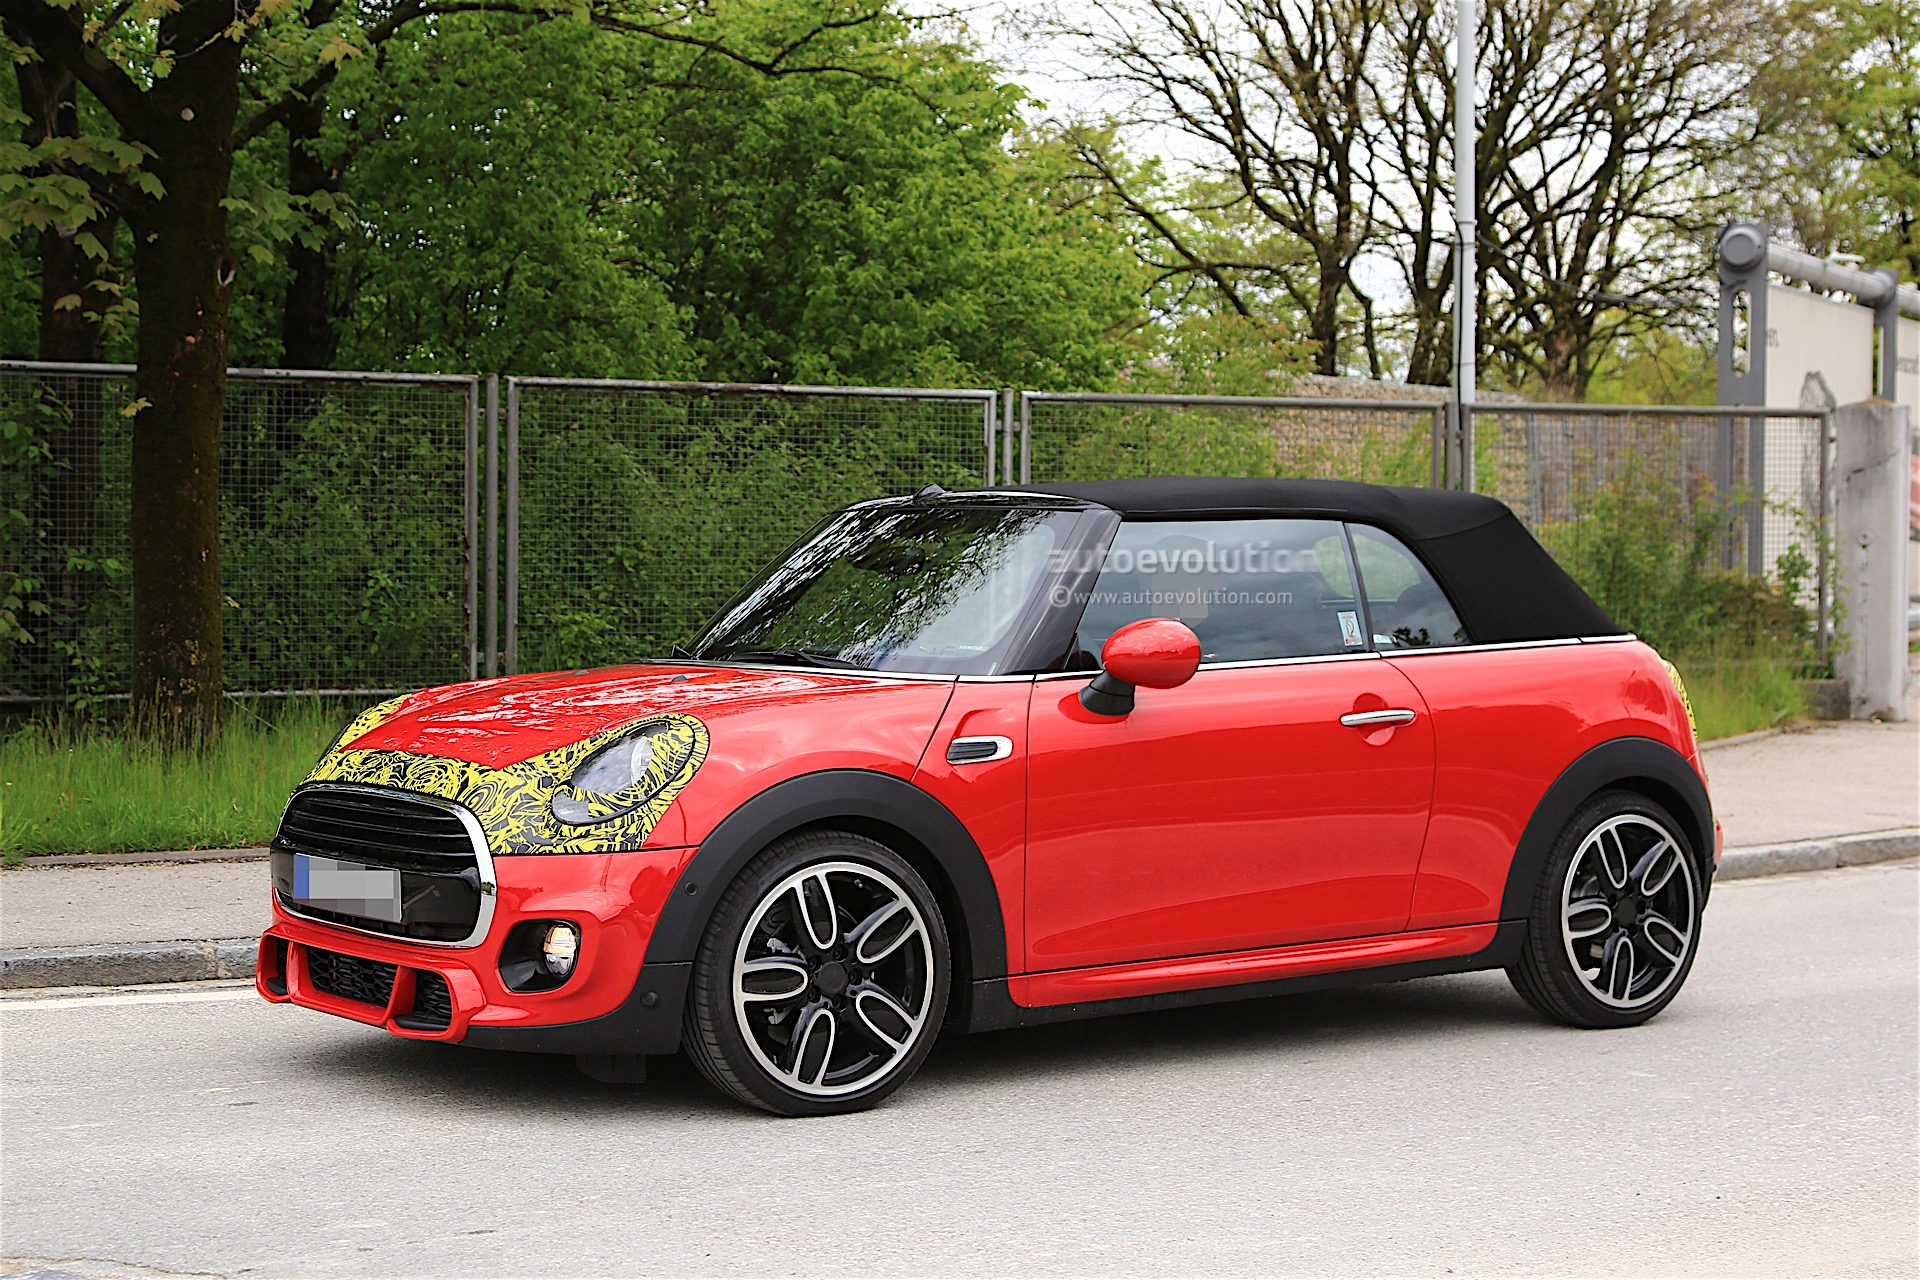 2018 mini cabrio and cooper s facelift spied in germany